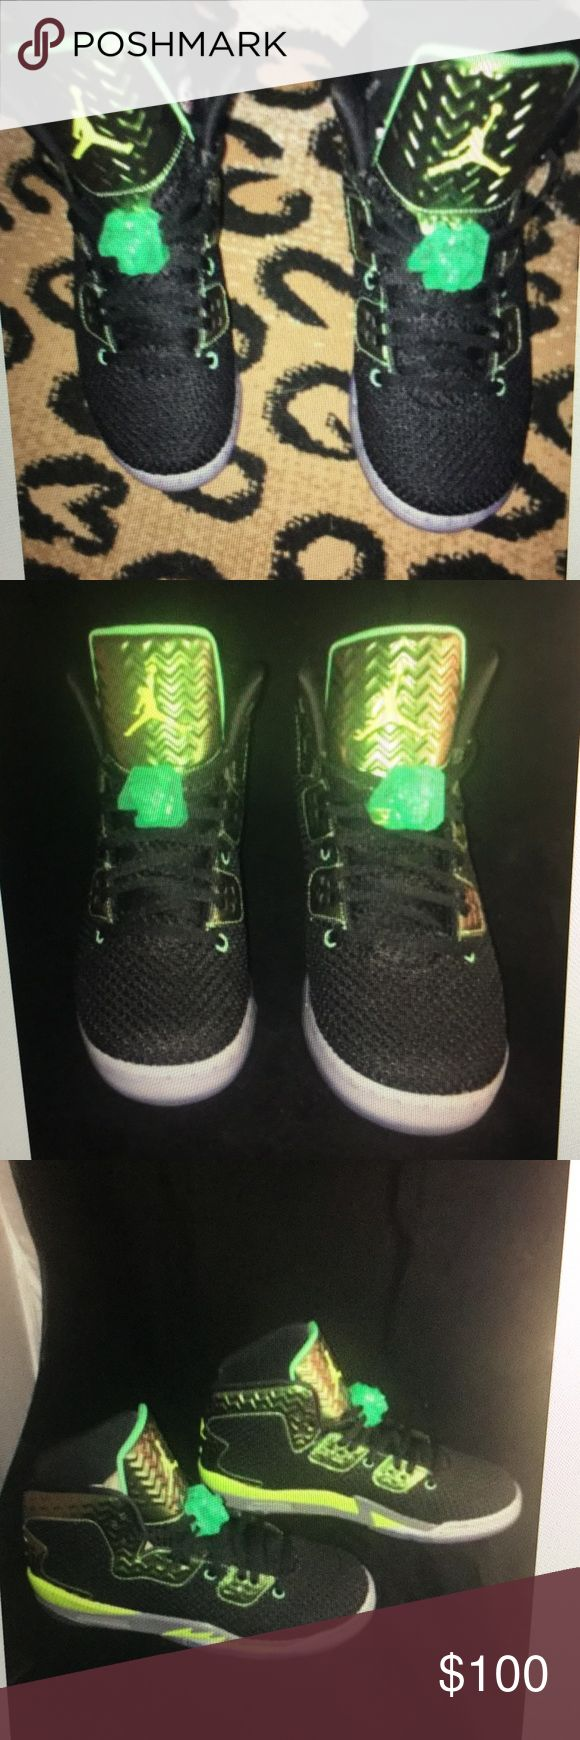 Nike Air Jordan Spike Lee NY green ghost RARE 7.5Y 7.5 Y , 9, 9.5 women's. Air Jordan Shoes Sneakers